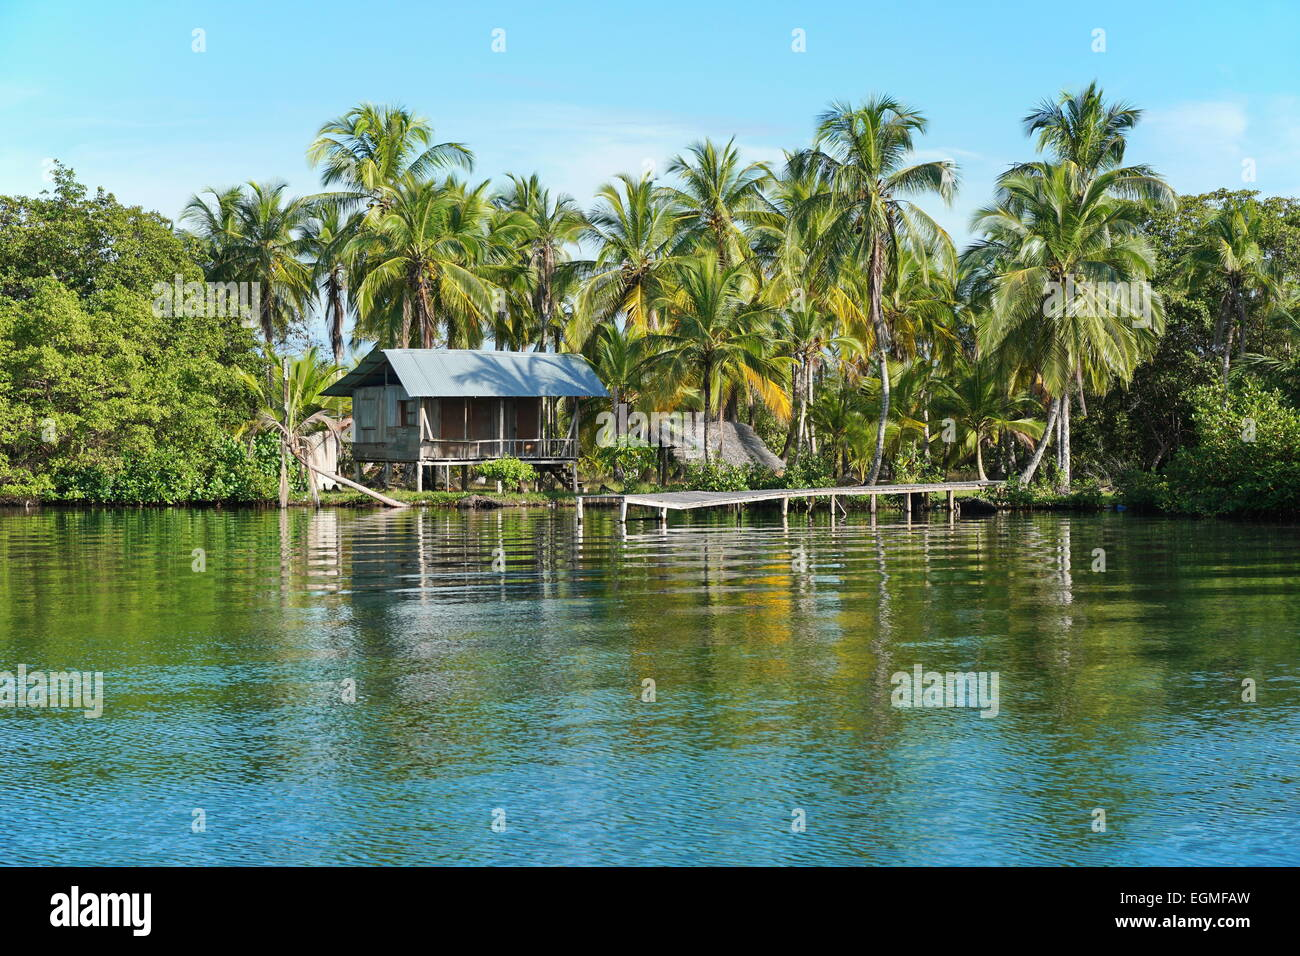 Rustic Amerindian hut with dock on tropical shore with coconut trees, Bocas del Toro, Panama, Caribbean, Central - Stock Image